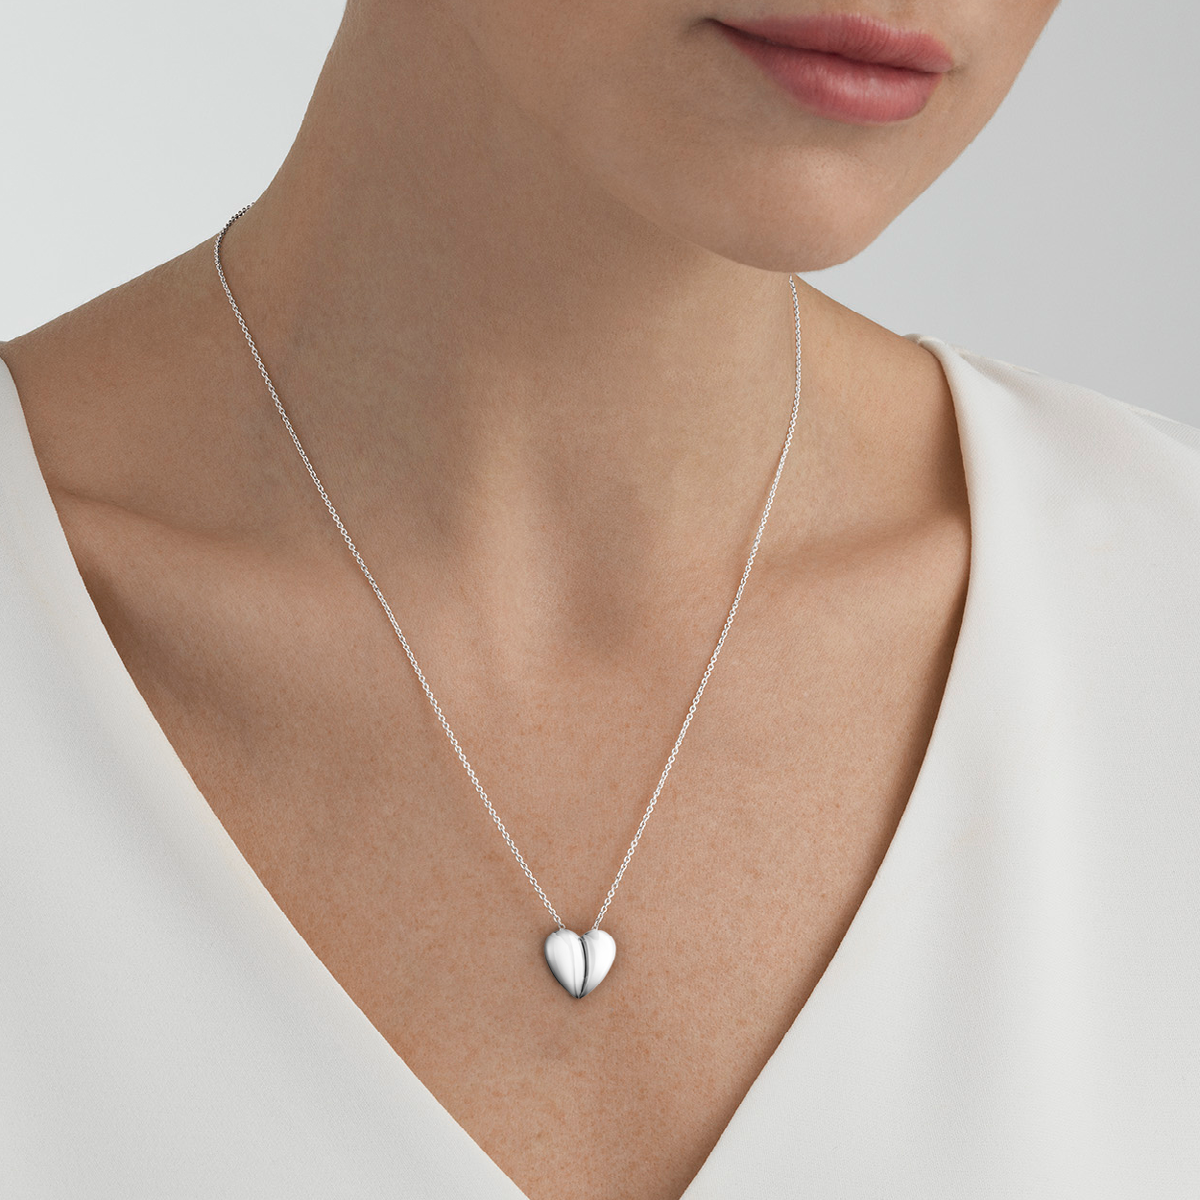 pack__10017504-HEARTS-OF-GEORG-JENSEN-PENDANT-SILVER-02